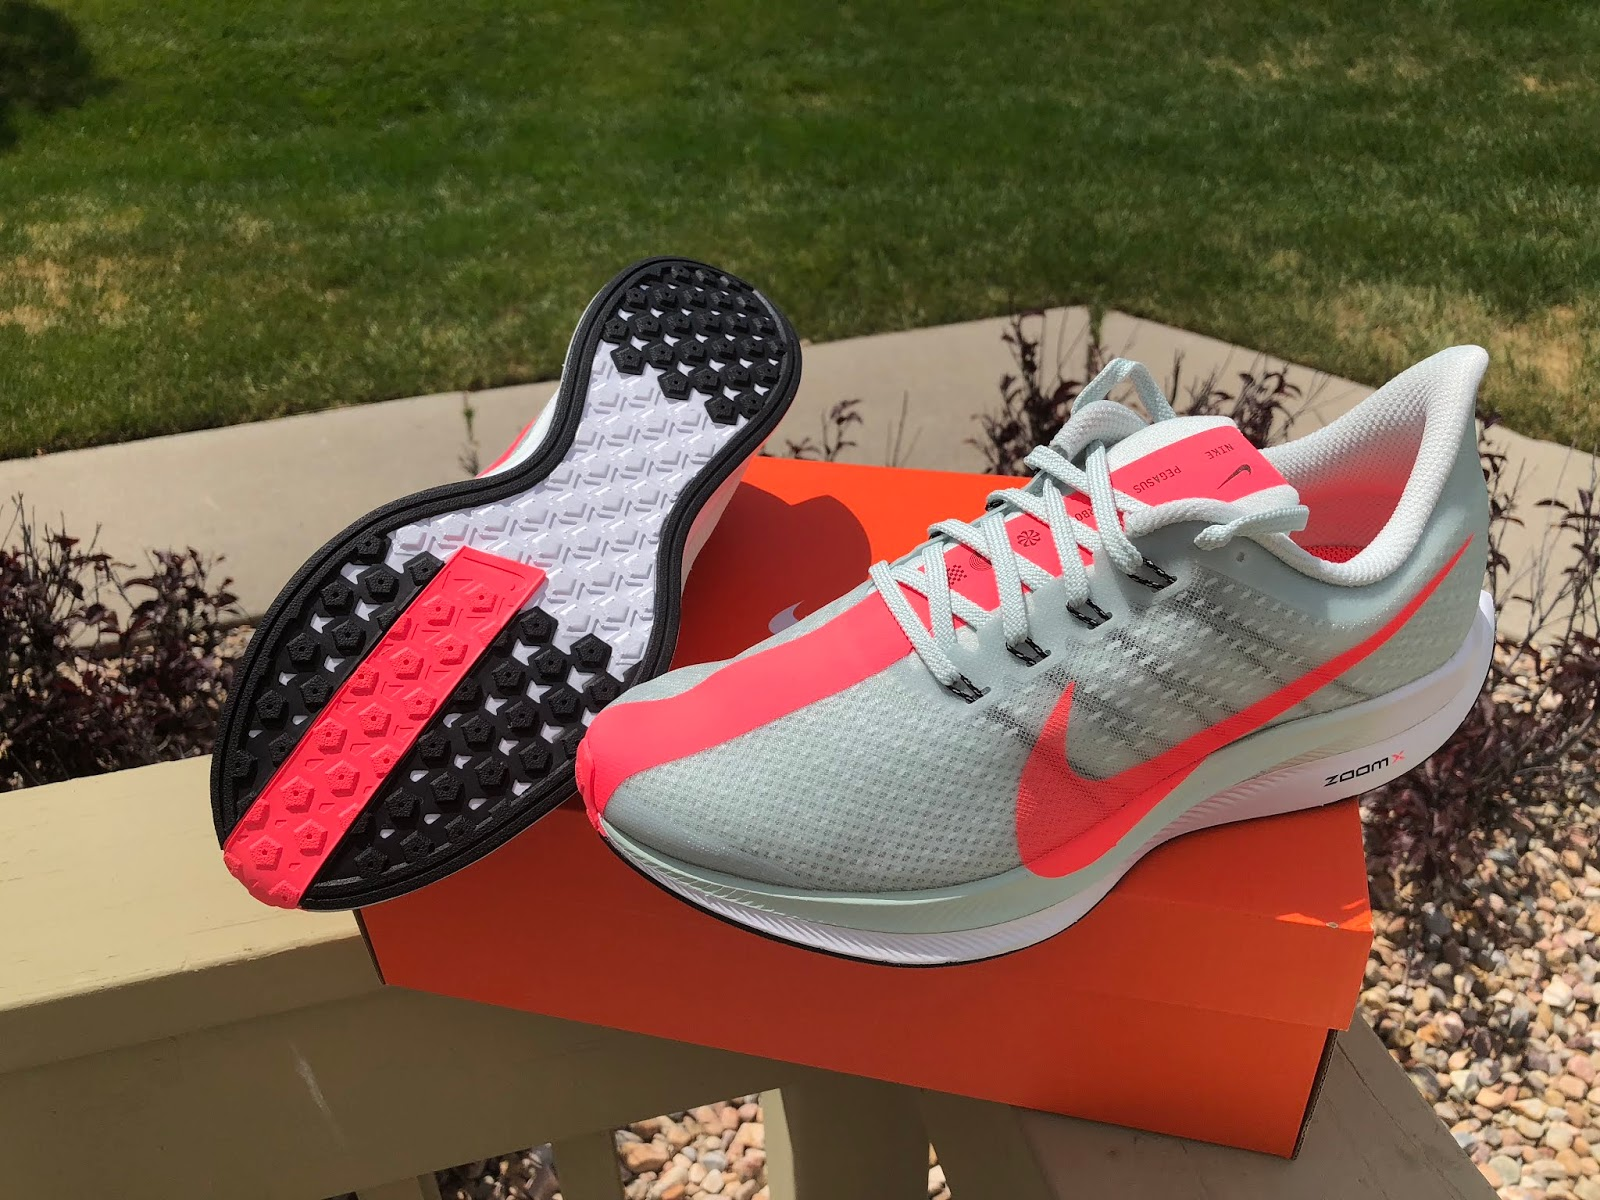 Nike Pegasus 35 Performance Review » Believe in the Run